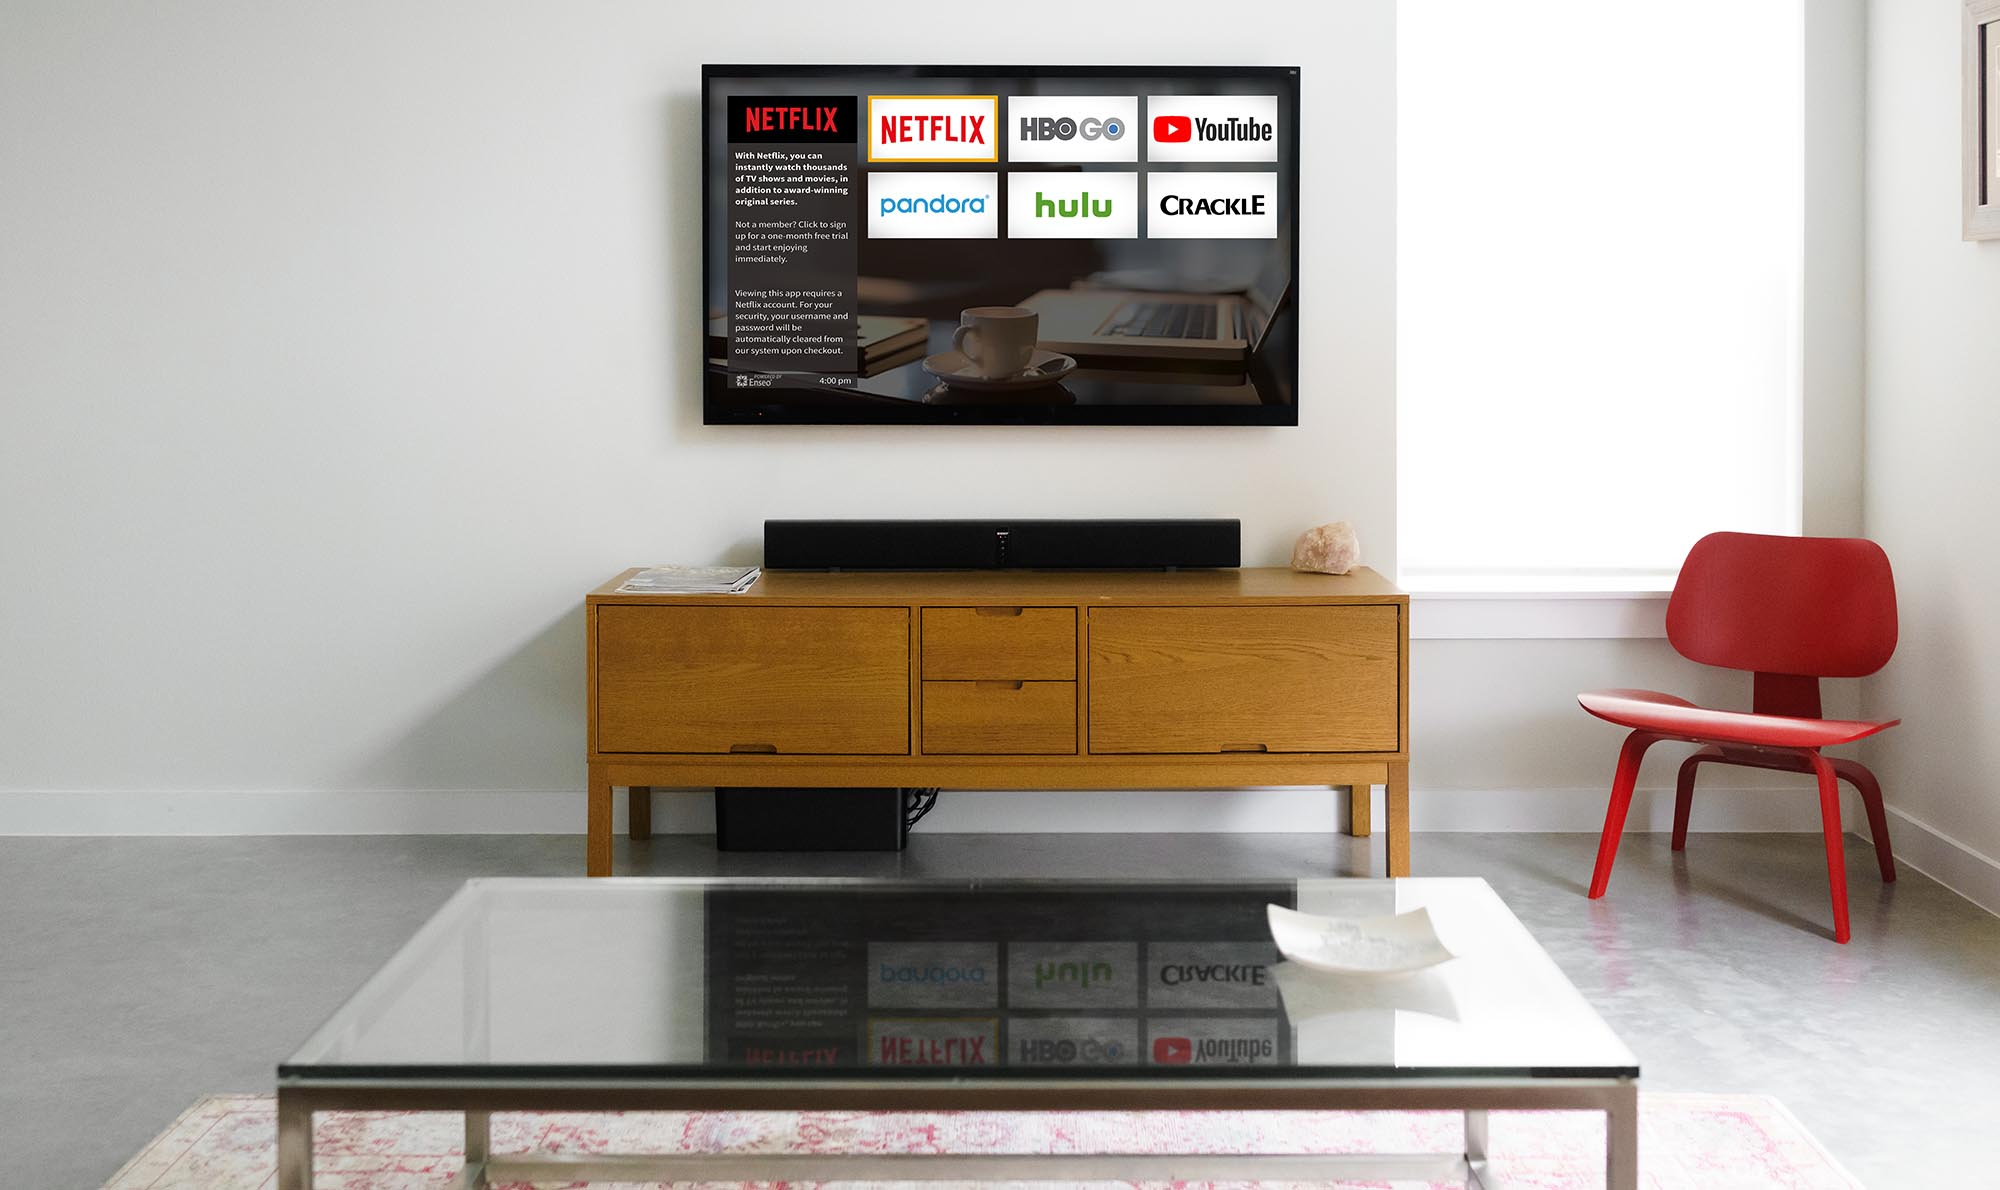 brightly lit hotel room with tv displaying streaming apps